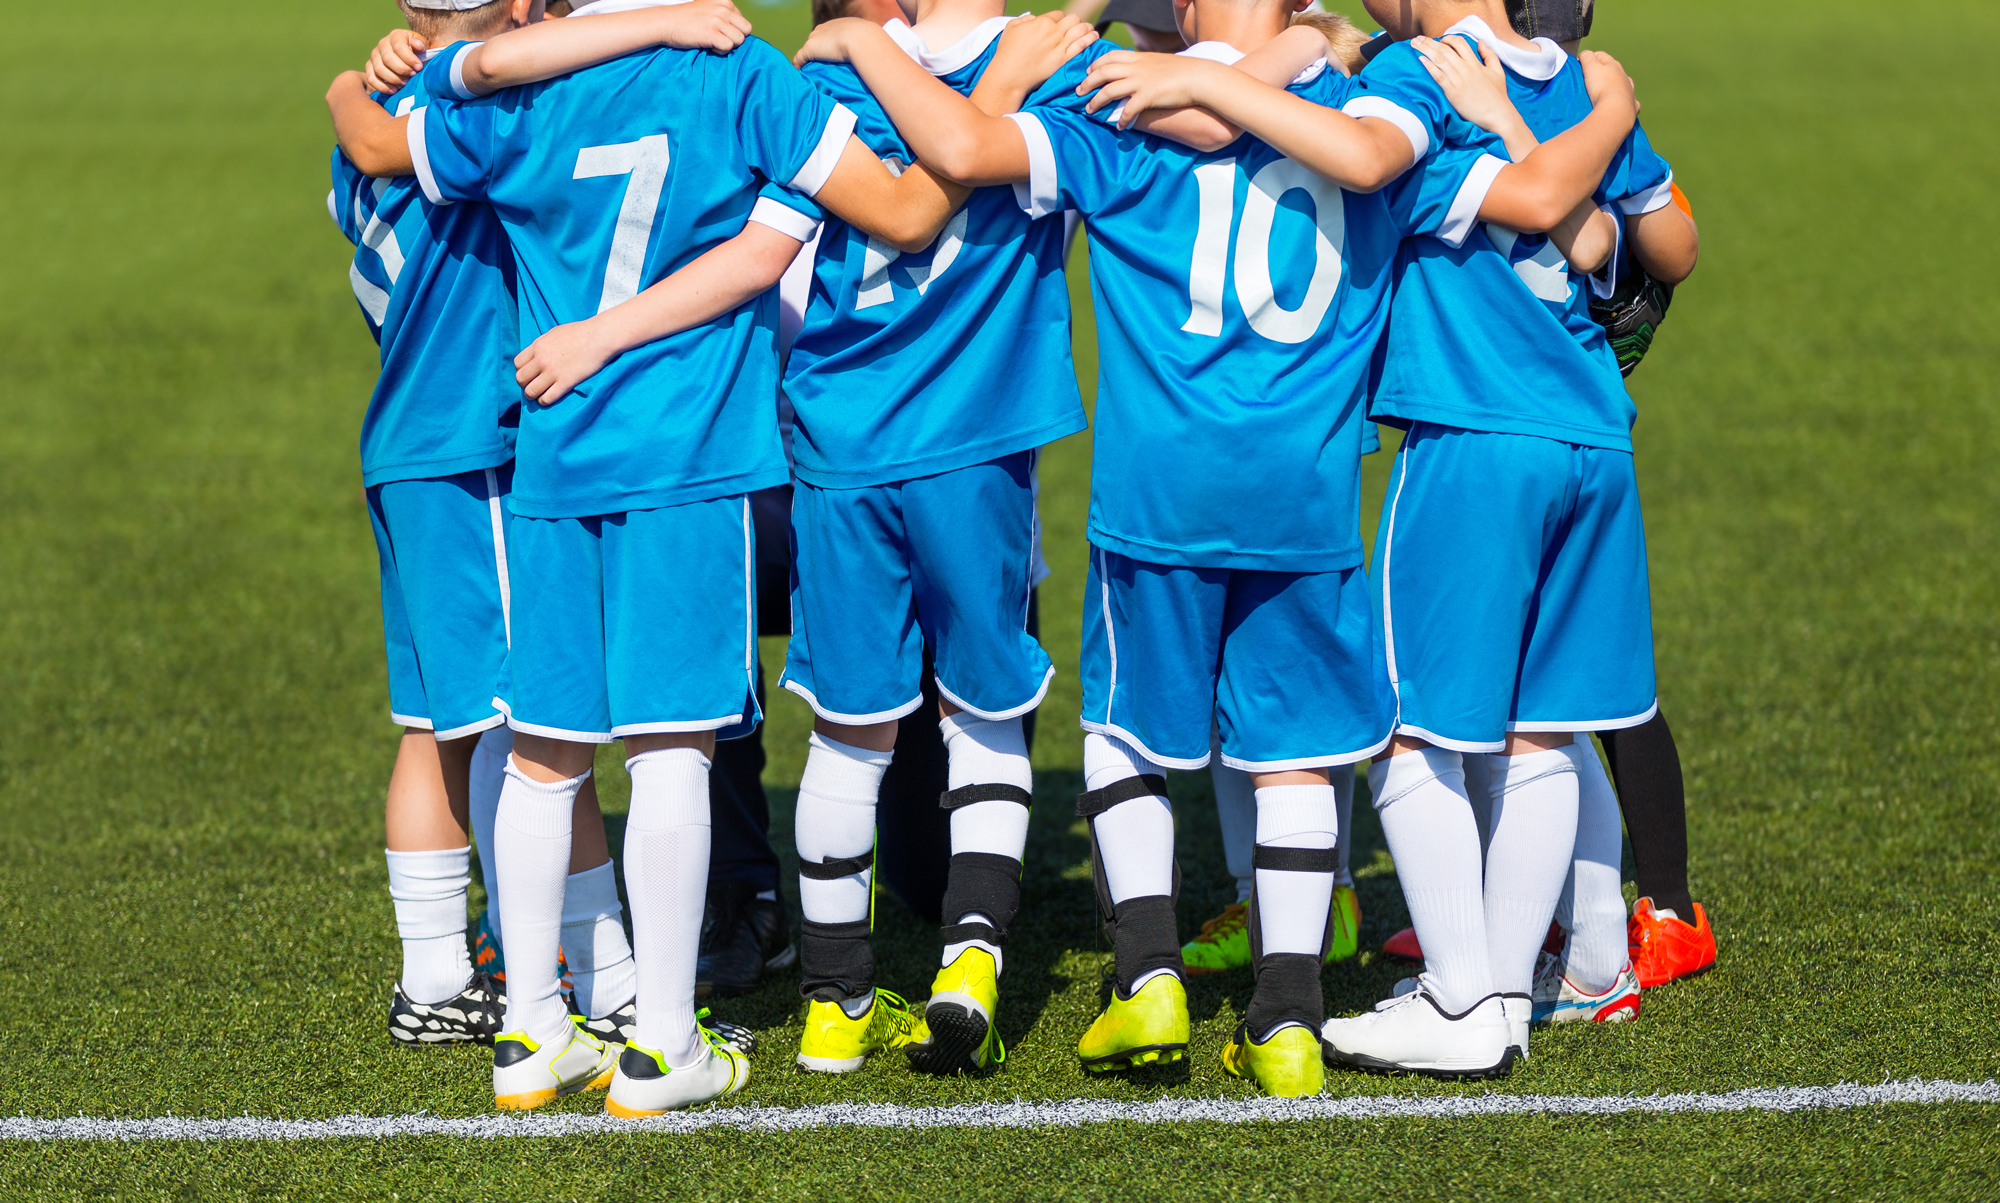 Youth Soccer Huddle